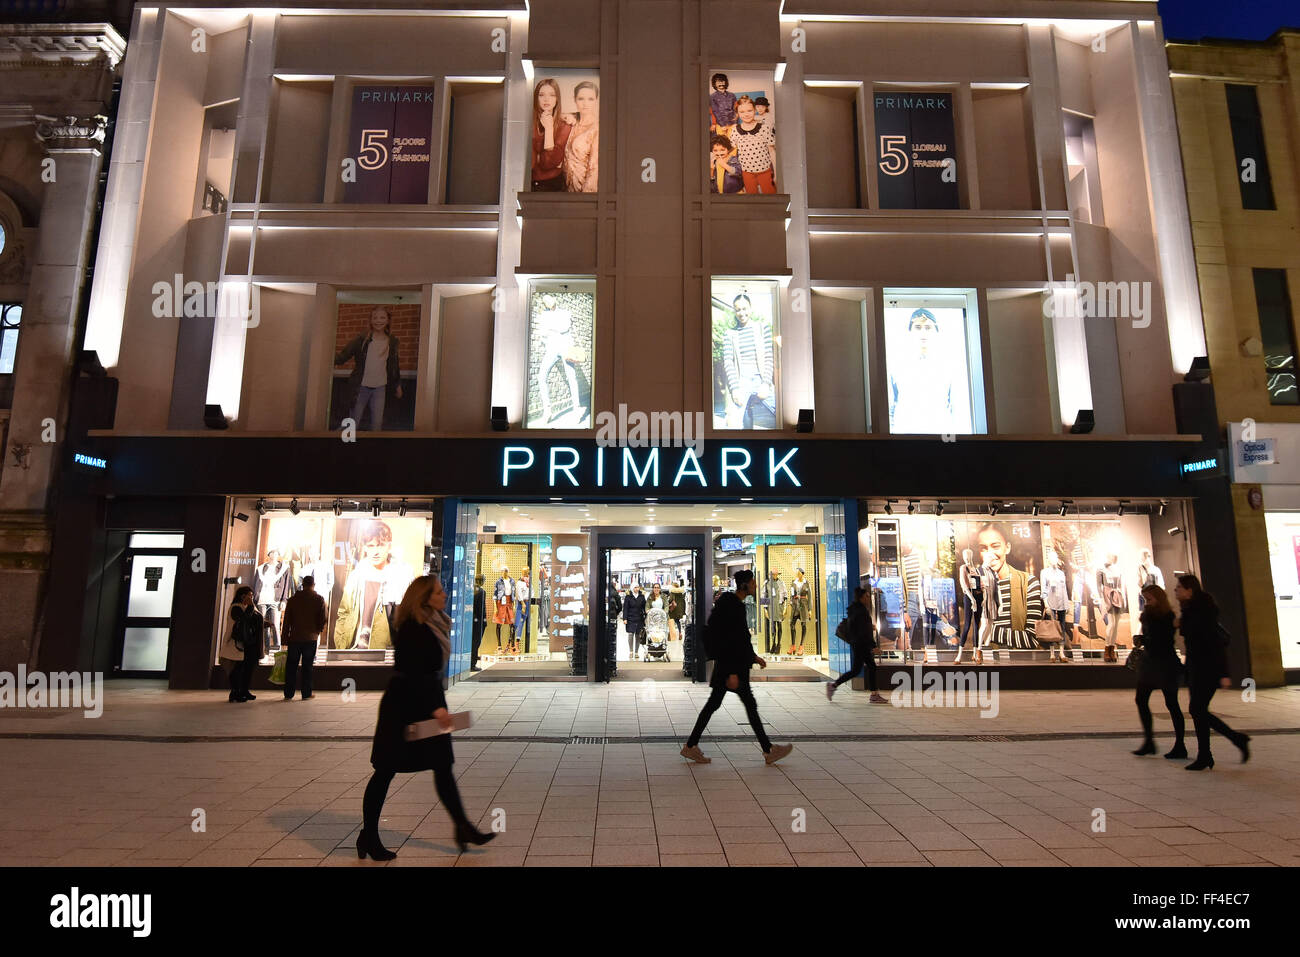 Primark retail store on Queen Street in Cardiff, South Wales. - Stock Image